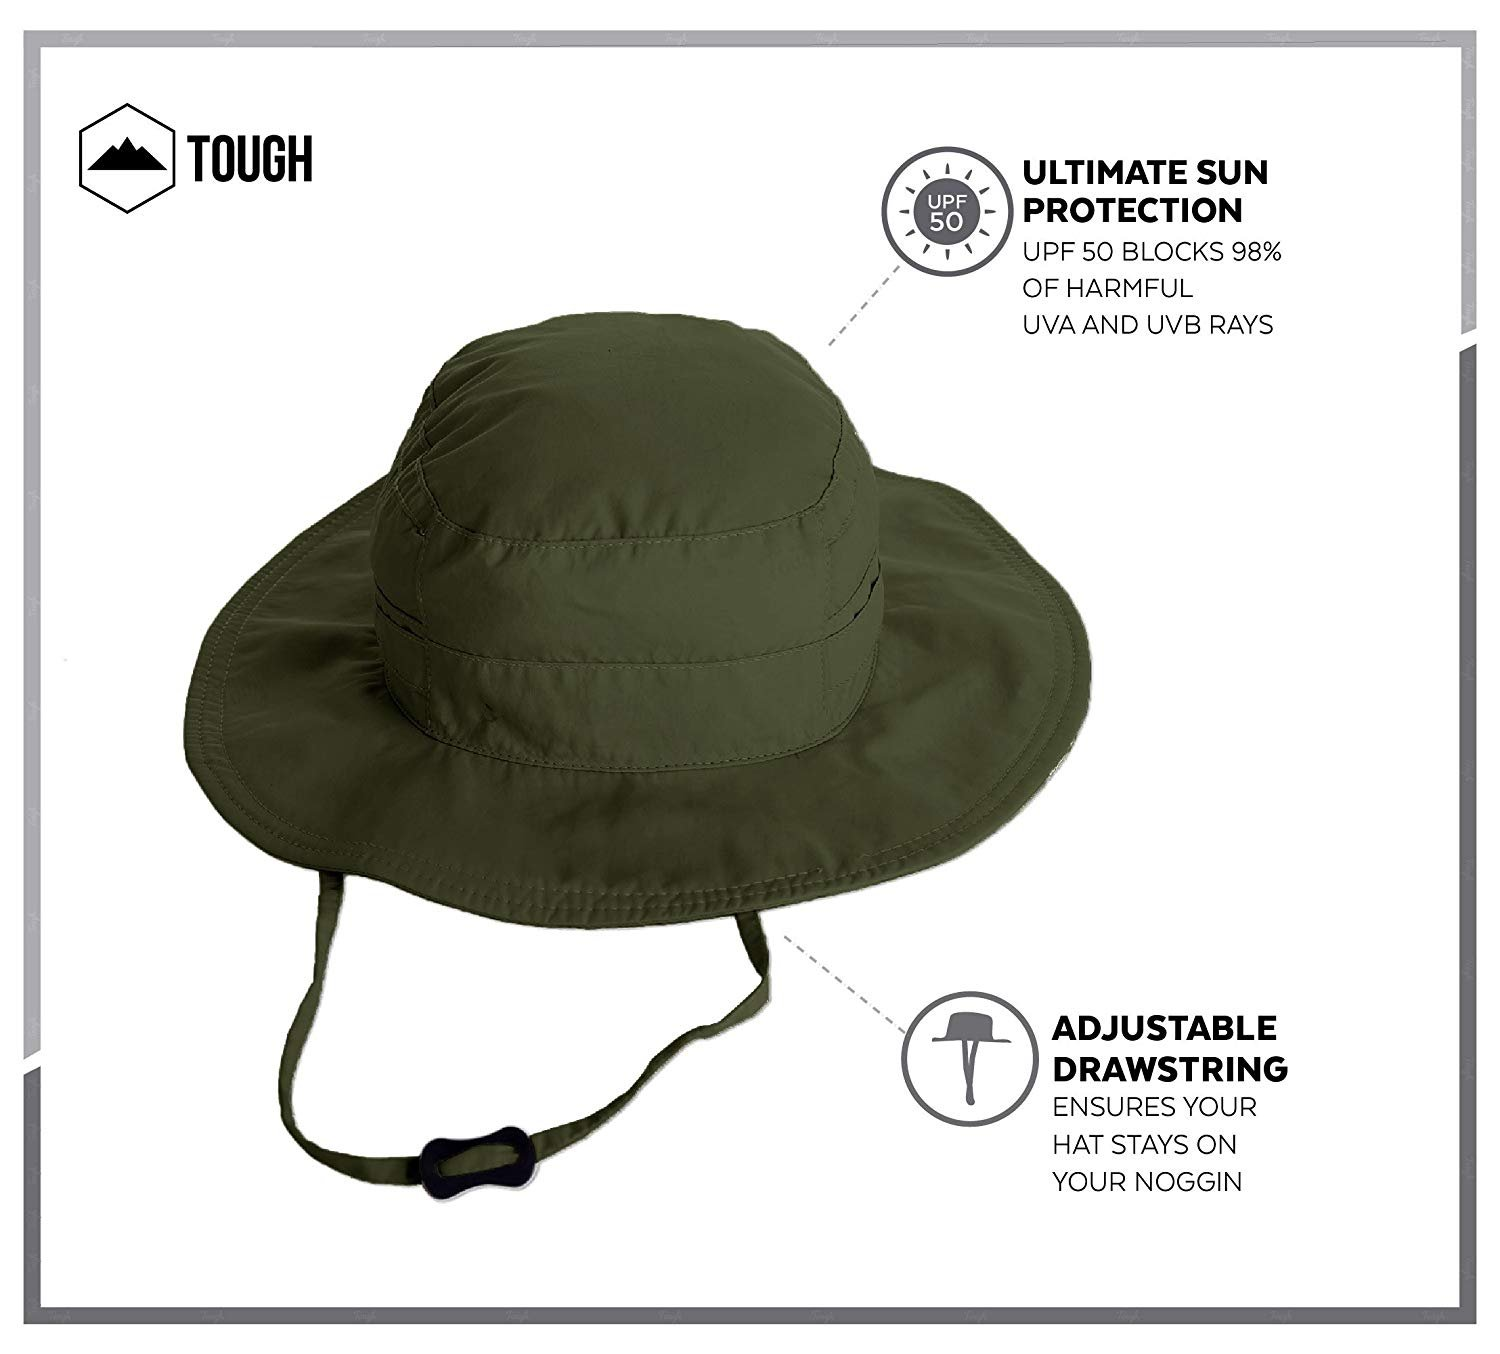 06d7c5e3bd9 Amazon.com   Boonie Safari Sun Hat for Men   Women - UPF 50 Sun Protection  - Wide Brim Summer Hat. Waterproof for Fishing